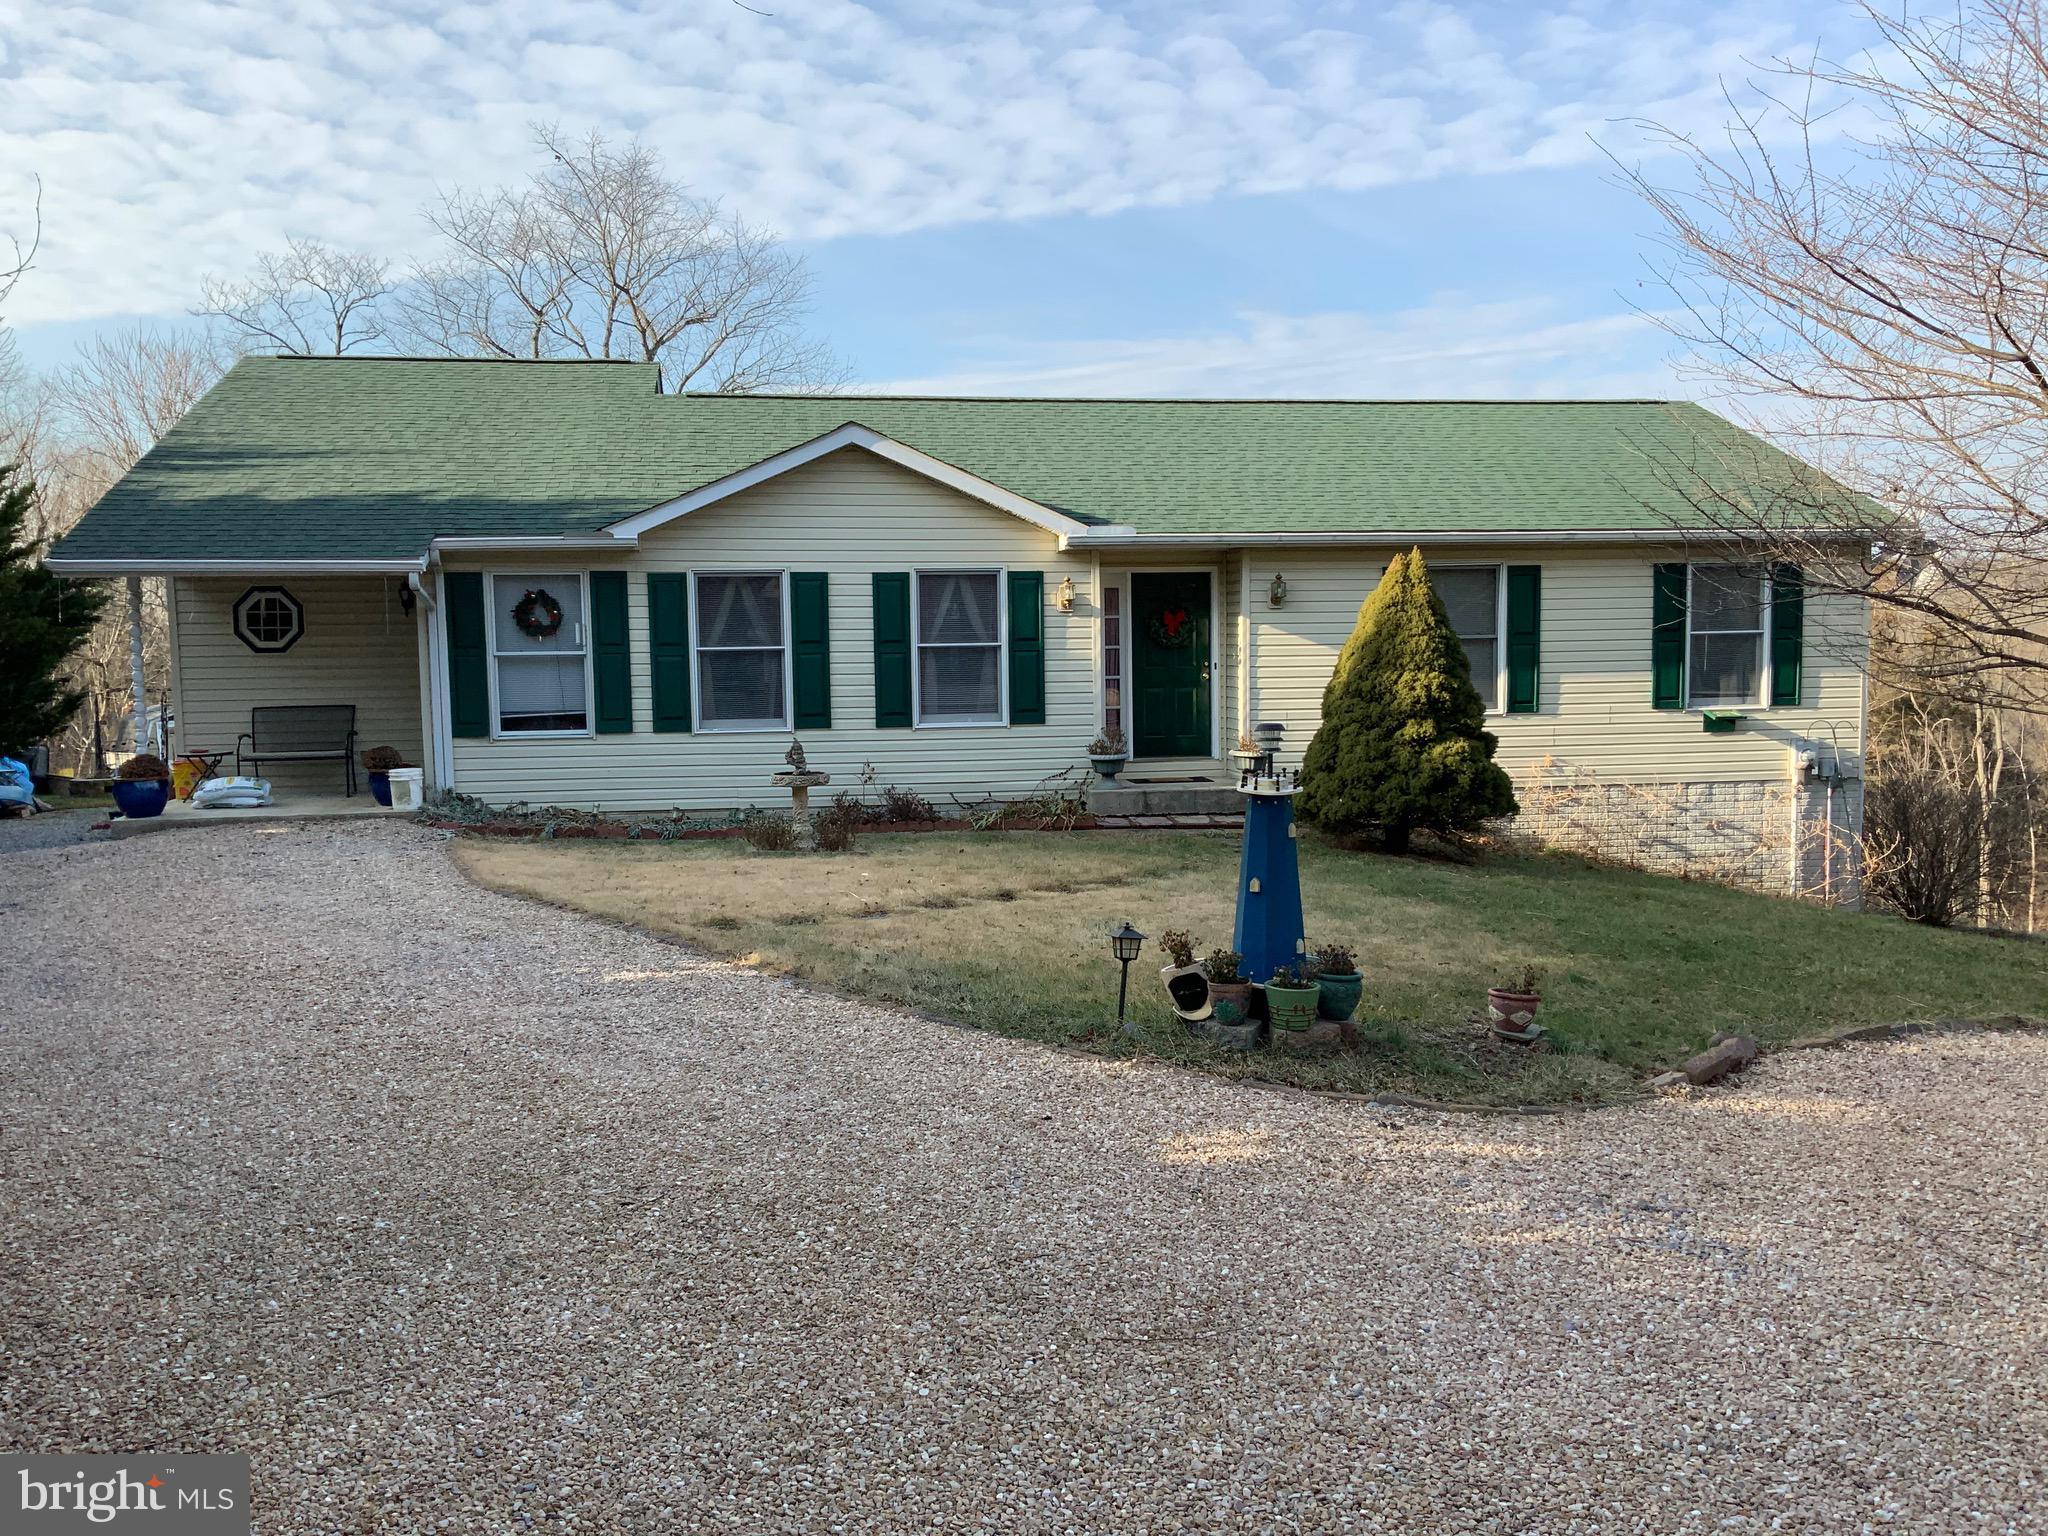 Rancher with In Law Suite & deeded River Lot, 3 bedrooms, 2 bathrooms on main level, 1 bedroom & ful